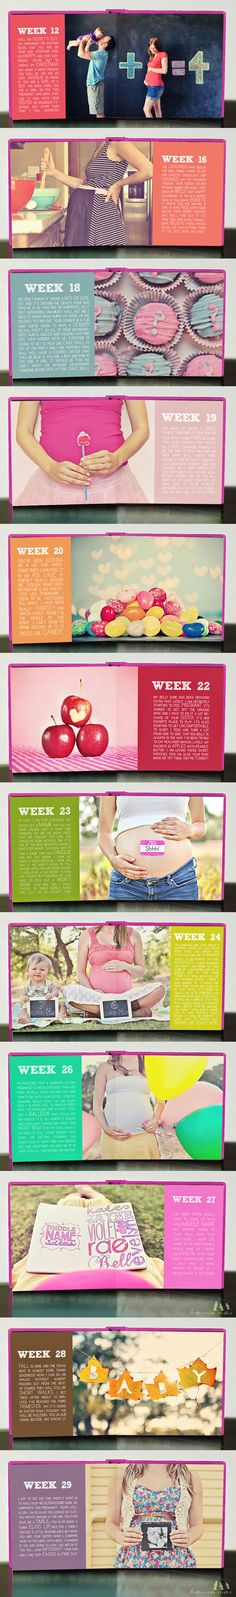 pregnancy book ideas, matern book, pregnancy photos, photo books, baby books